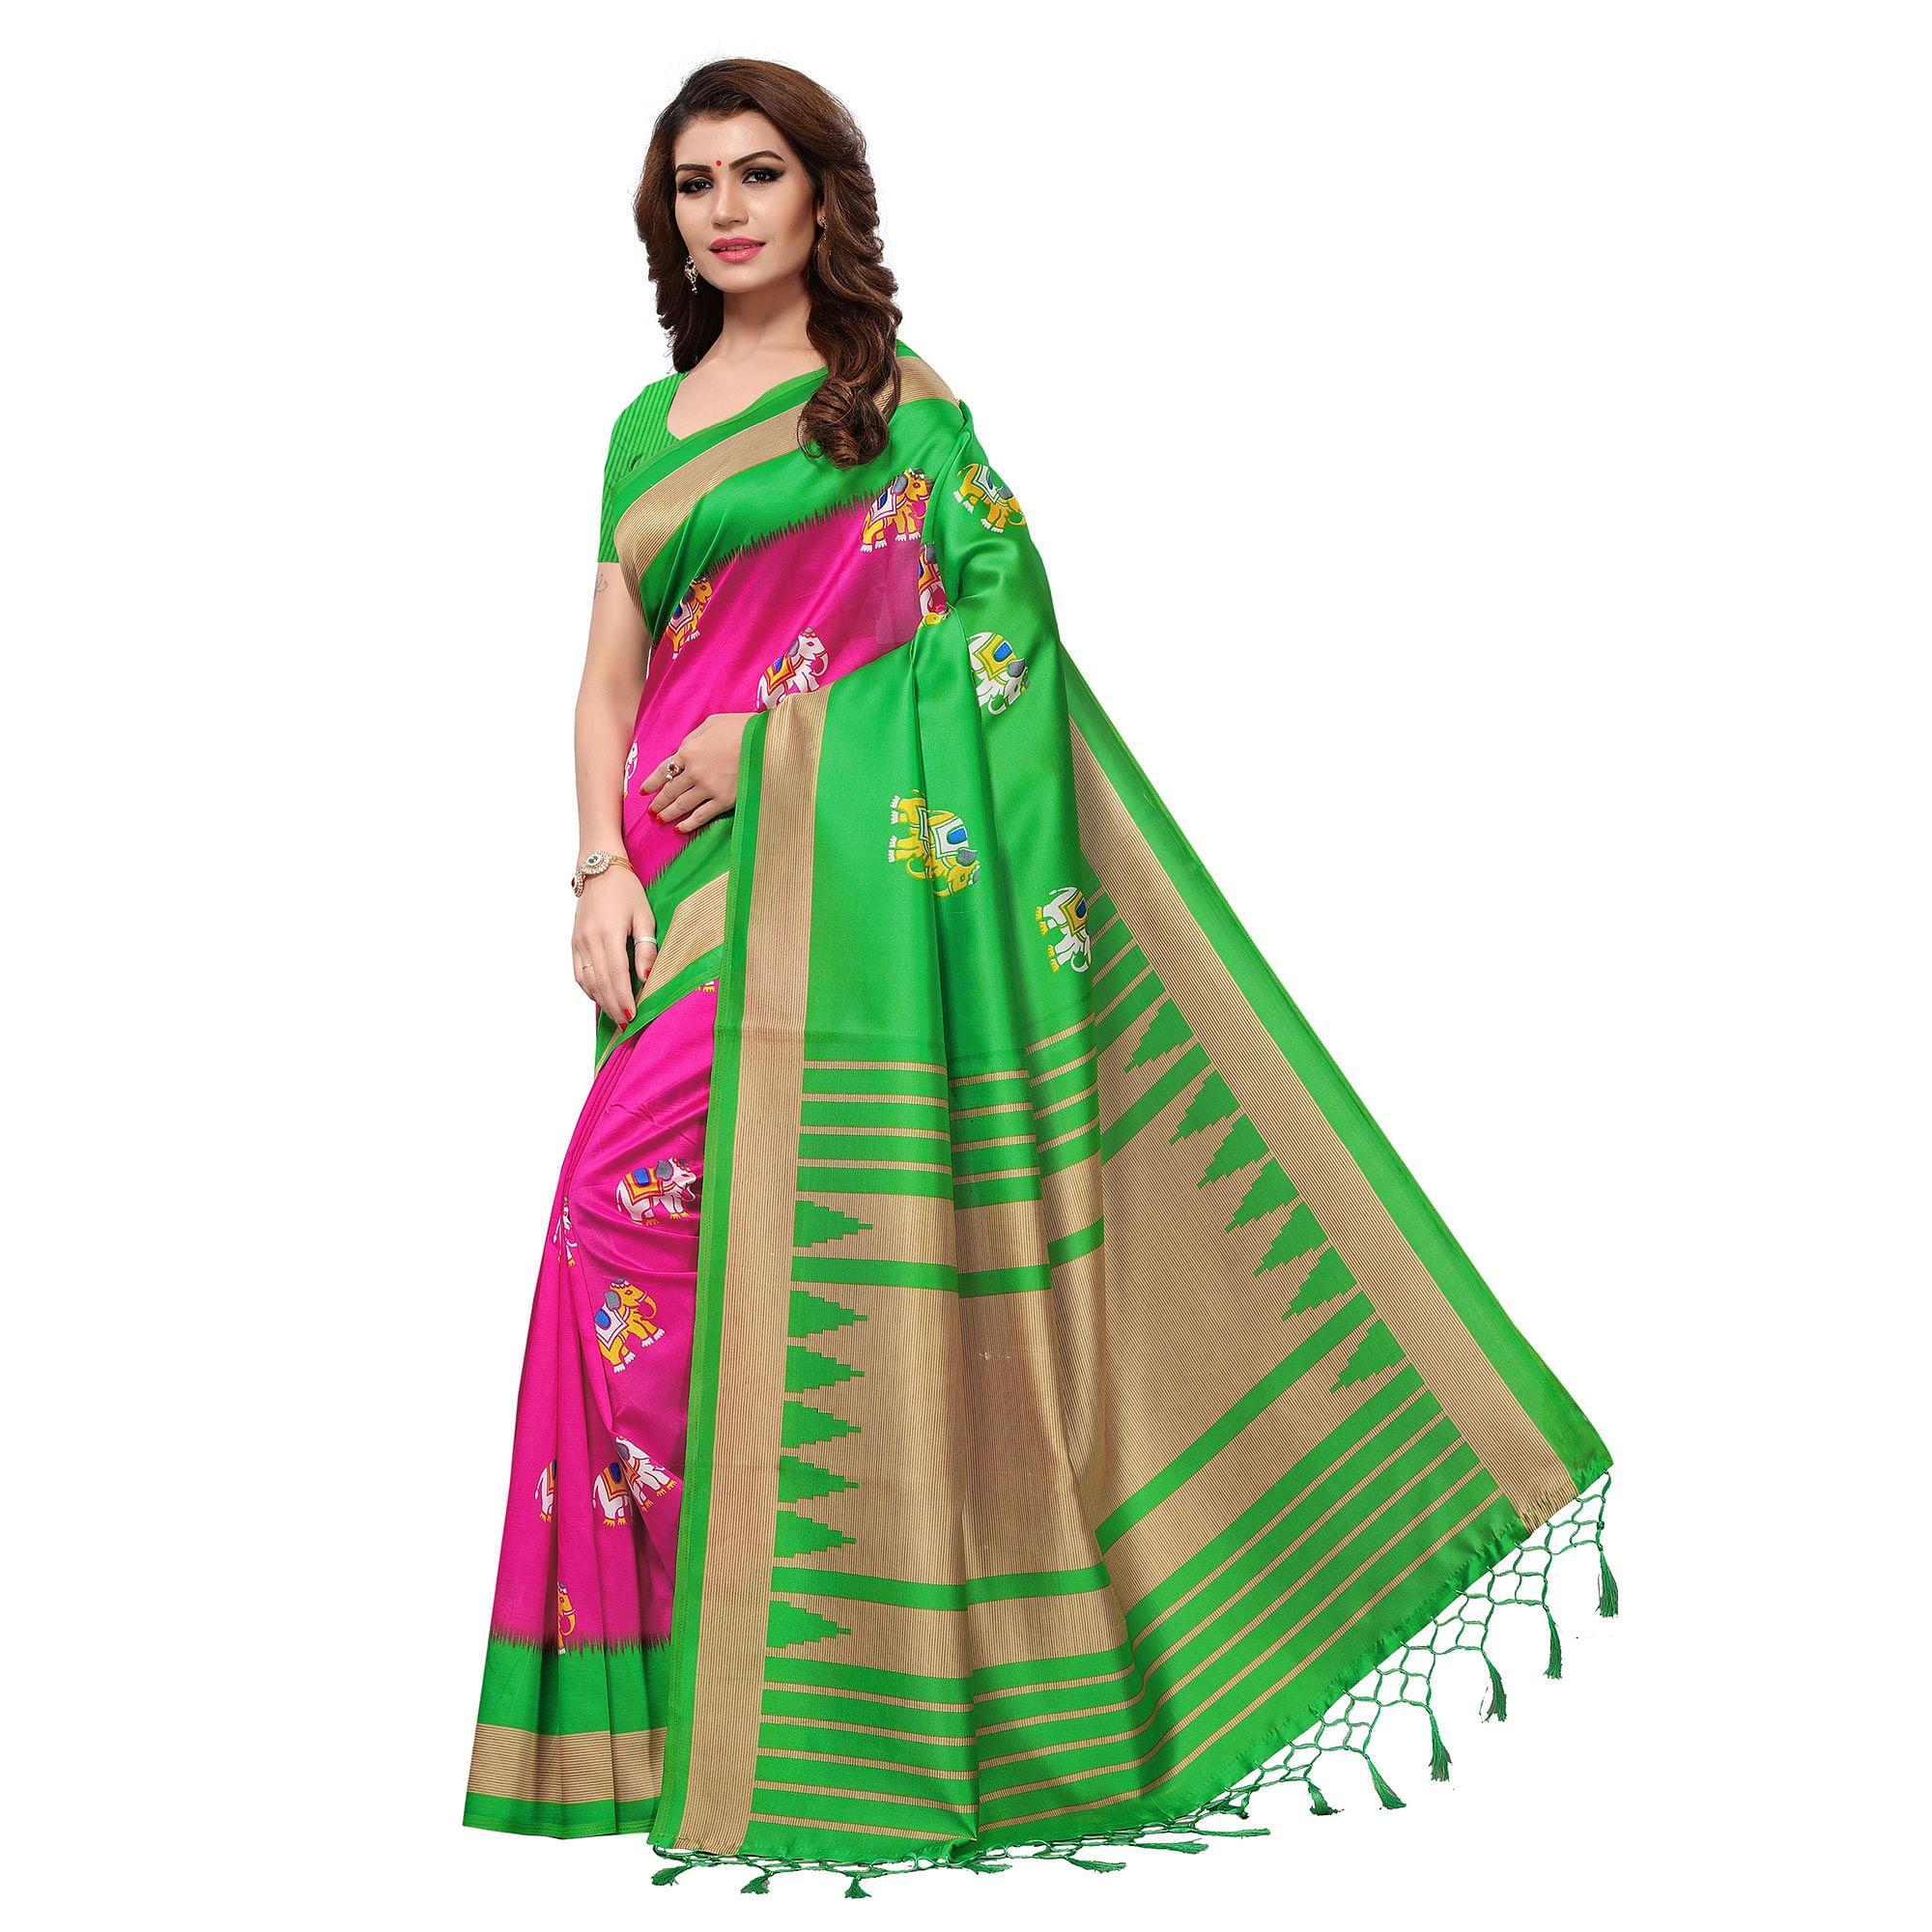 e6fdae1c4 Buy Radiant Pink-Green Colored Festive Wear Printed Mysore Art Silk Saree  For womens online India, Best Prices, Reviews - Peachmode